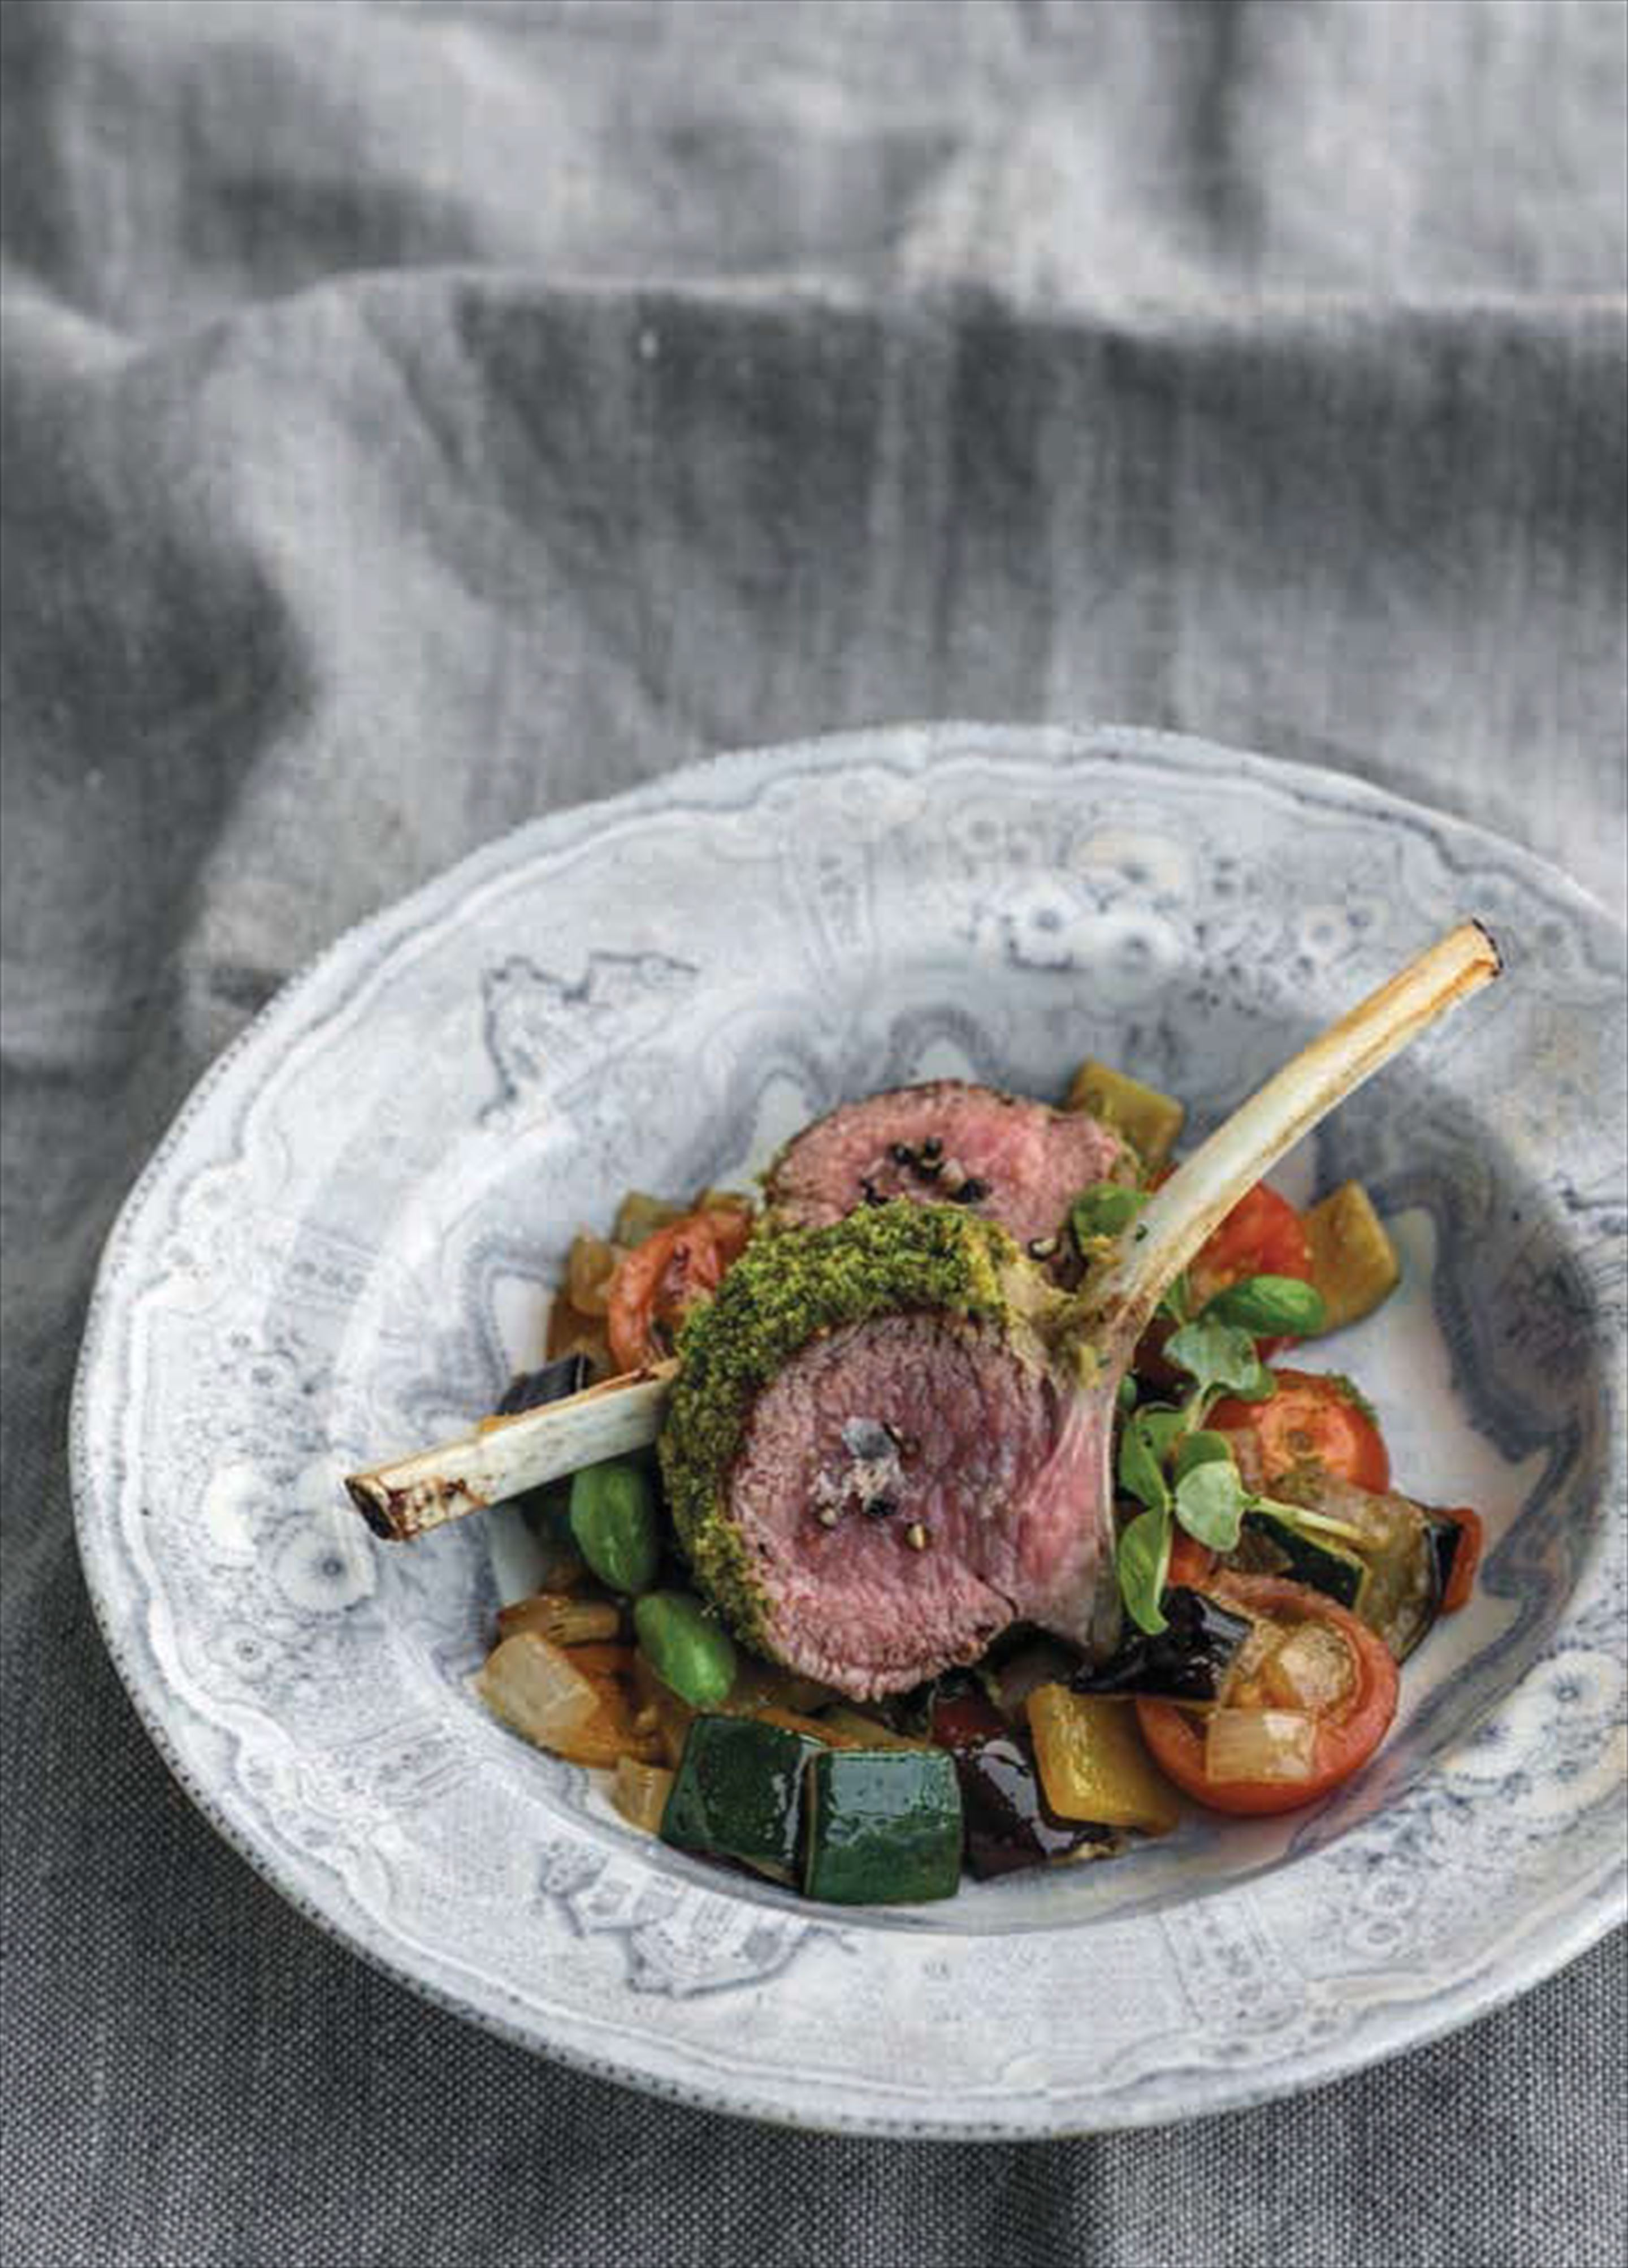 Herb-crusted rack of lamb with ratatouille